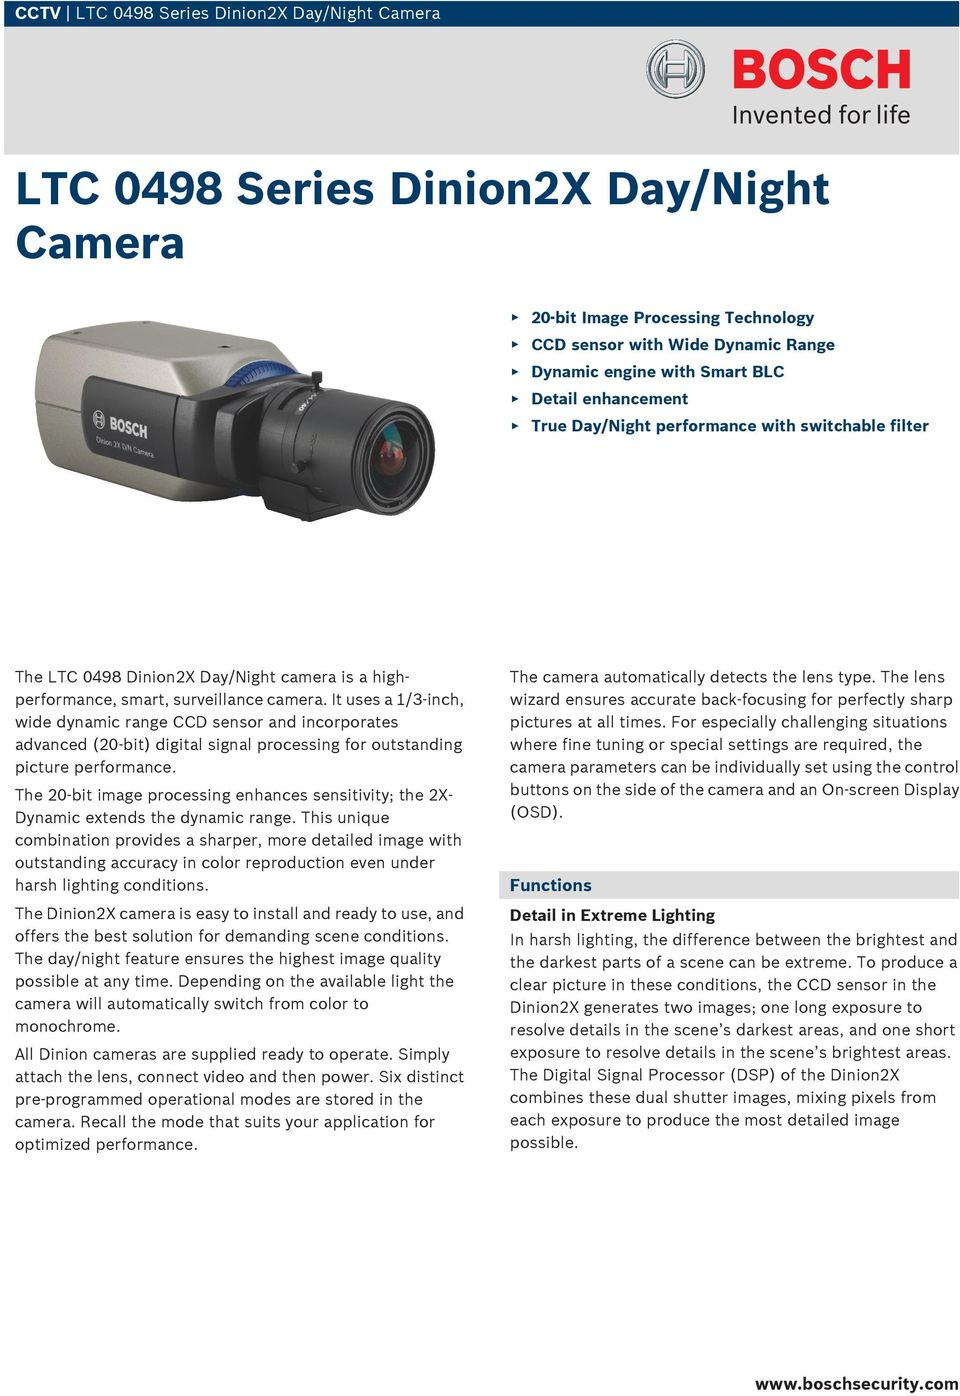 It uses a 1/3-inch, wide dynamic range CCD sensor and incorporates advanced (20-bit) digital signal processing for outstanding picture performance.